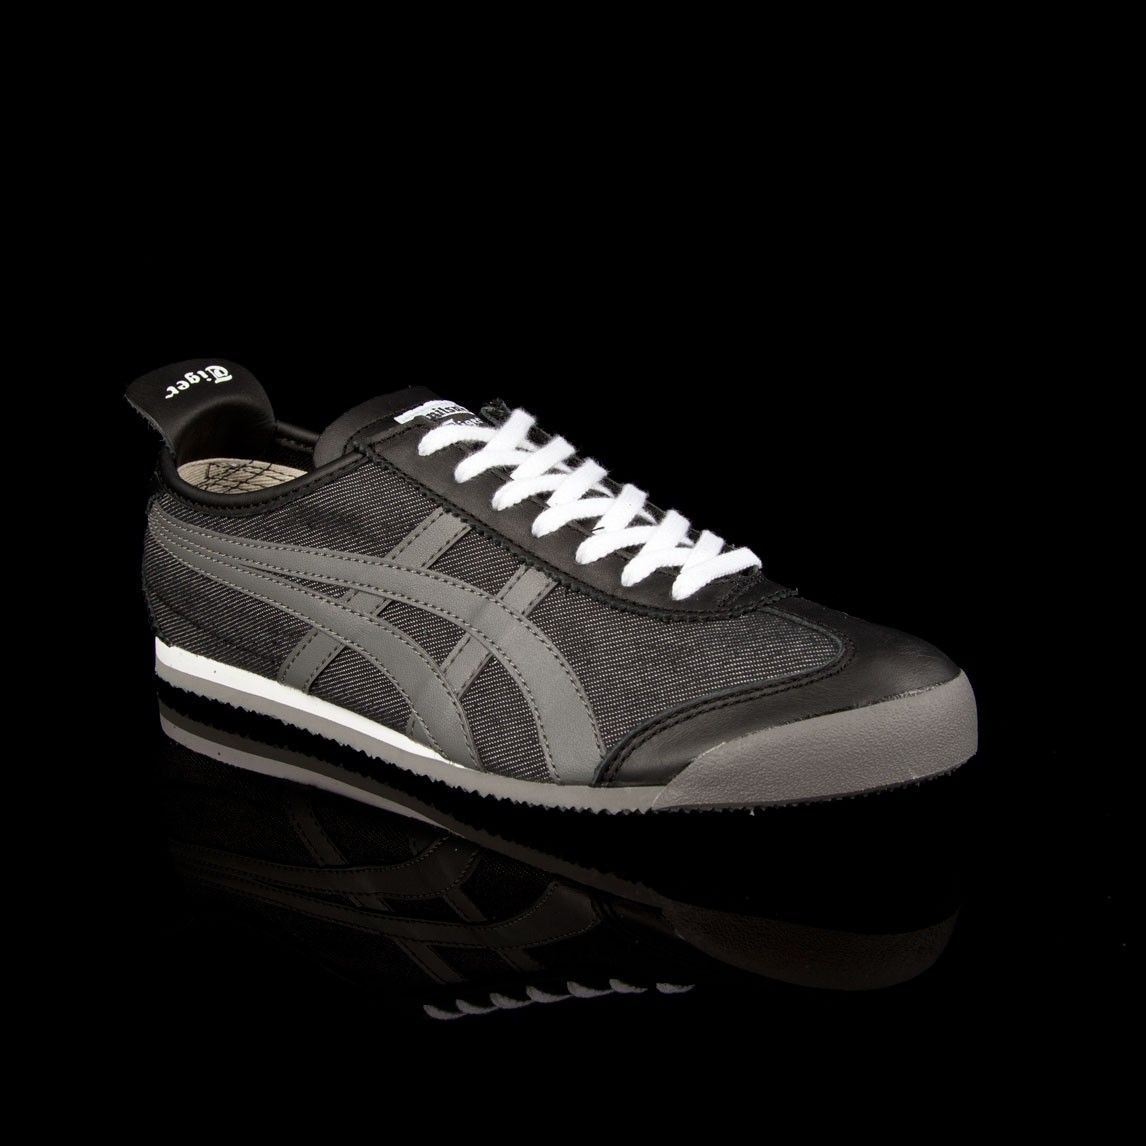 Onitsuka Tiger Mexico 66 With Images Sneakers Men Retro Shoes